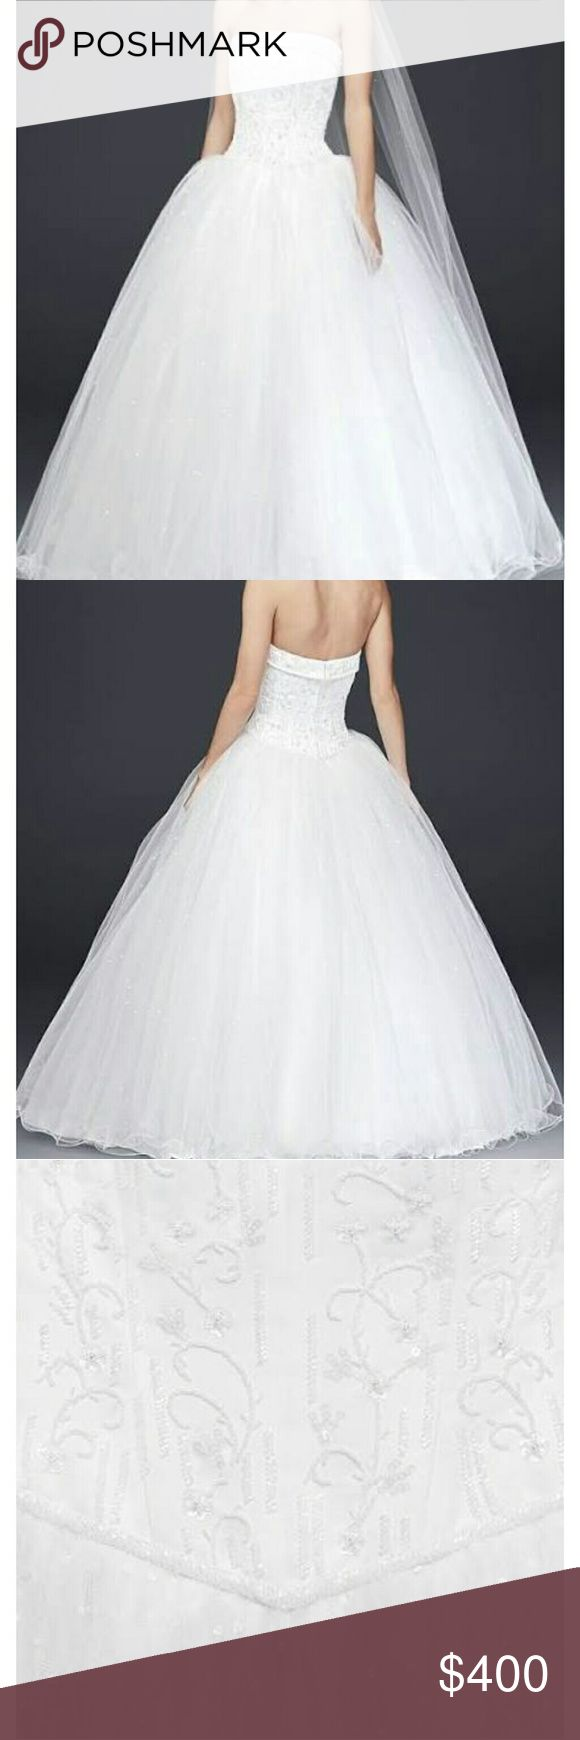 Tulle Wedding Dress with Corseted Satin Bodice Tulle Wedding Dress with Corseted Satin Bodice, white size 8. Channel your inner princess wearing this jaw-dropping strapless ball gown. With a beaded satin corset, cuff neckline, and beaded tulle skirt, a fantasy-come-true has never looked quite so elegant. David's Bridal Collection  Style:NT8017   Also available in my closet, is a matching veil. Never worn, just tried on in the store before purchased. Been in a garment bag ever since. David's…